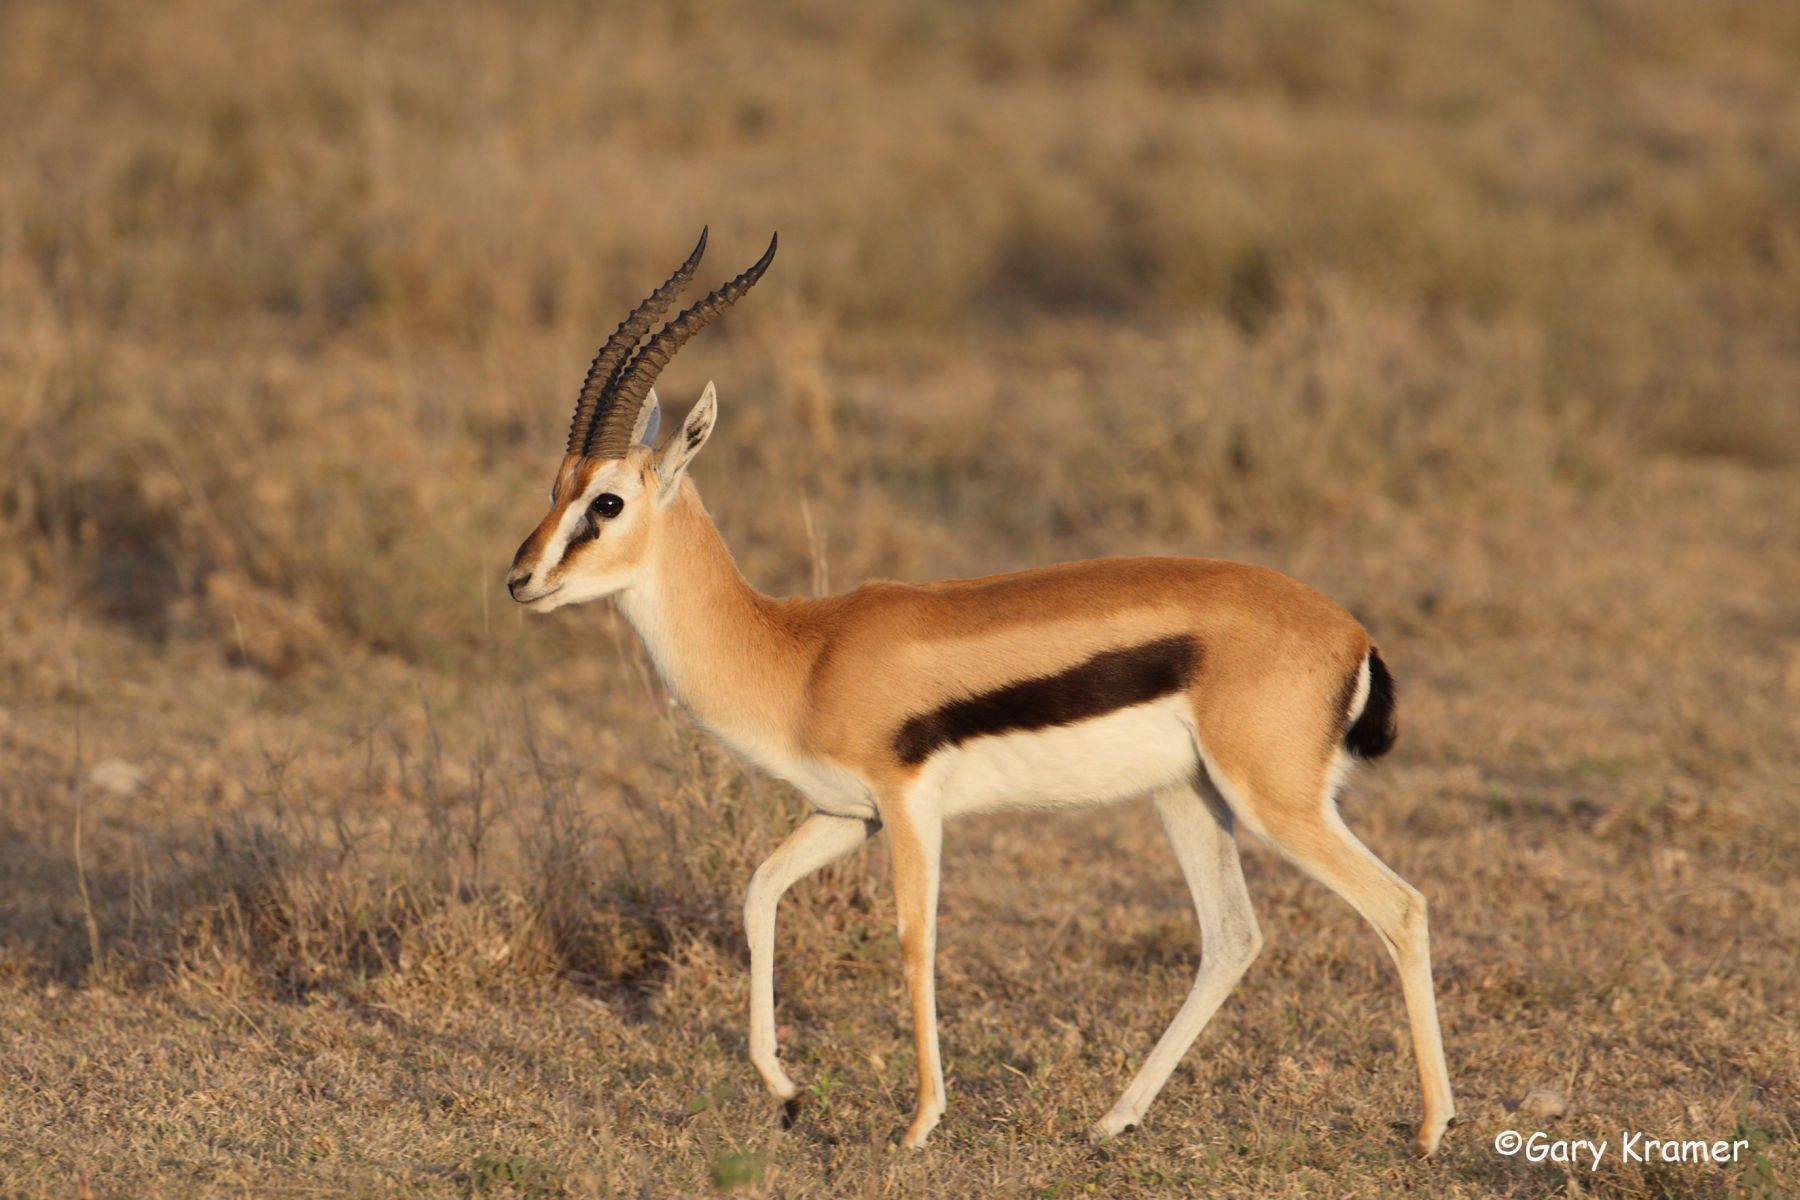 Young Gazelle in the Wild 1225.31 Kb